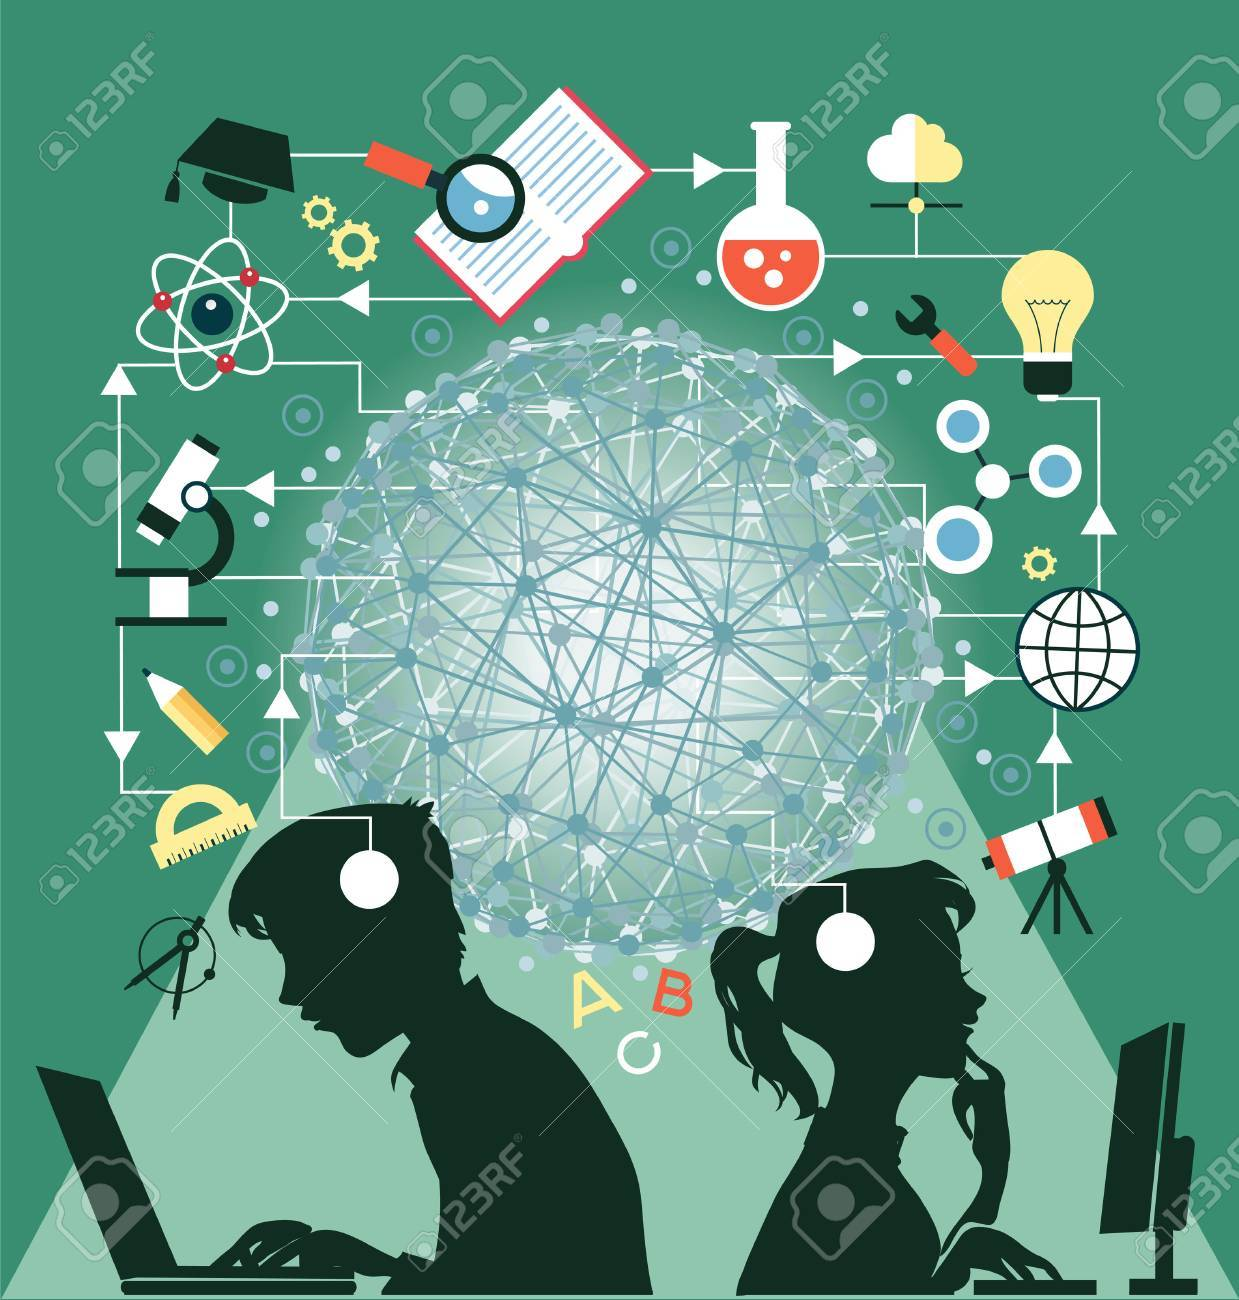 The concept of education. Icons education. Online education, Silhouettes of boy and girl involved in the computers in an environment of education icons. - 63265846